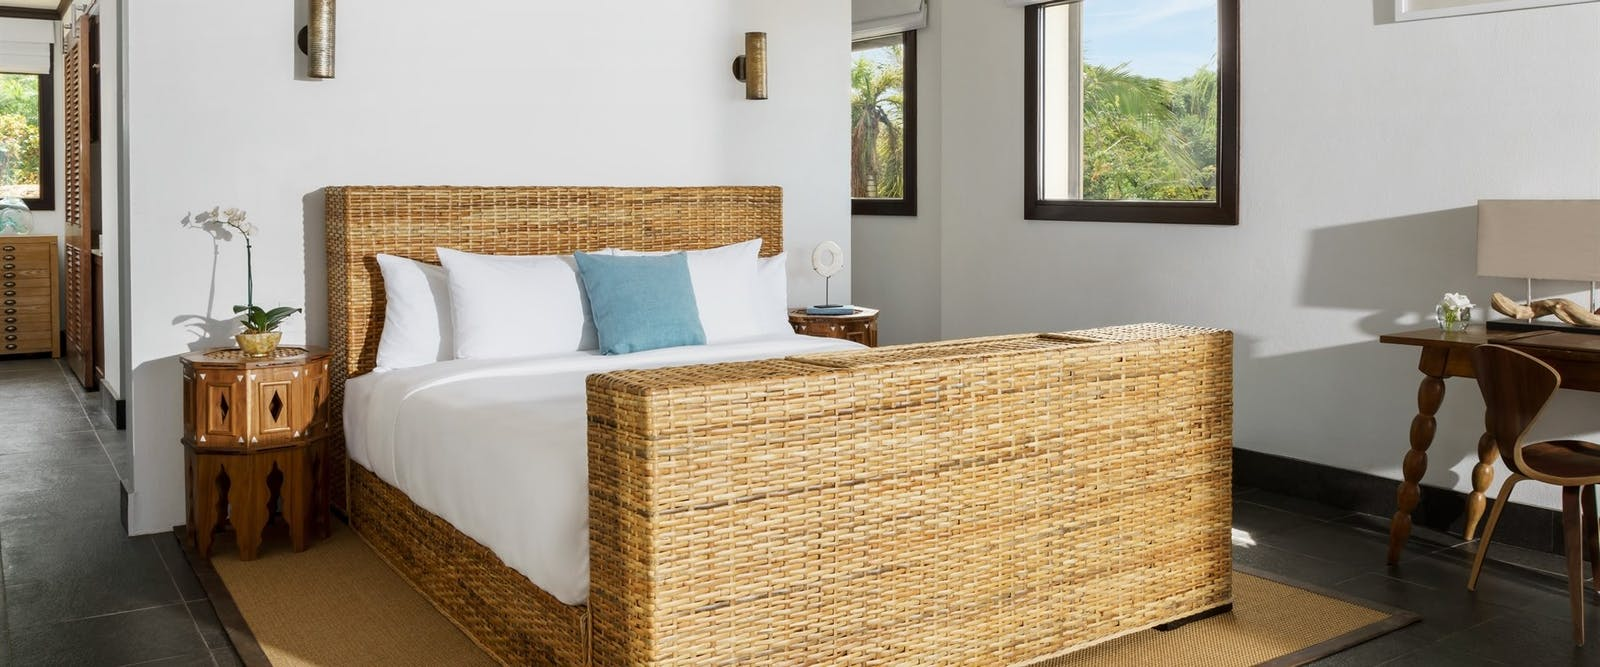 Premium Bedroom at Zemi Beach House, Anguilla